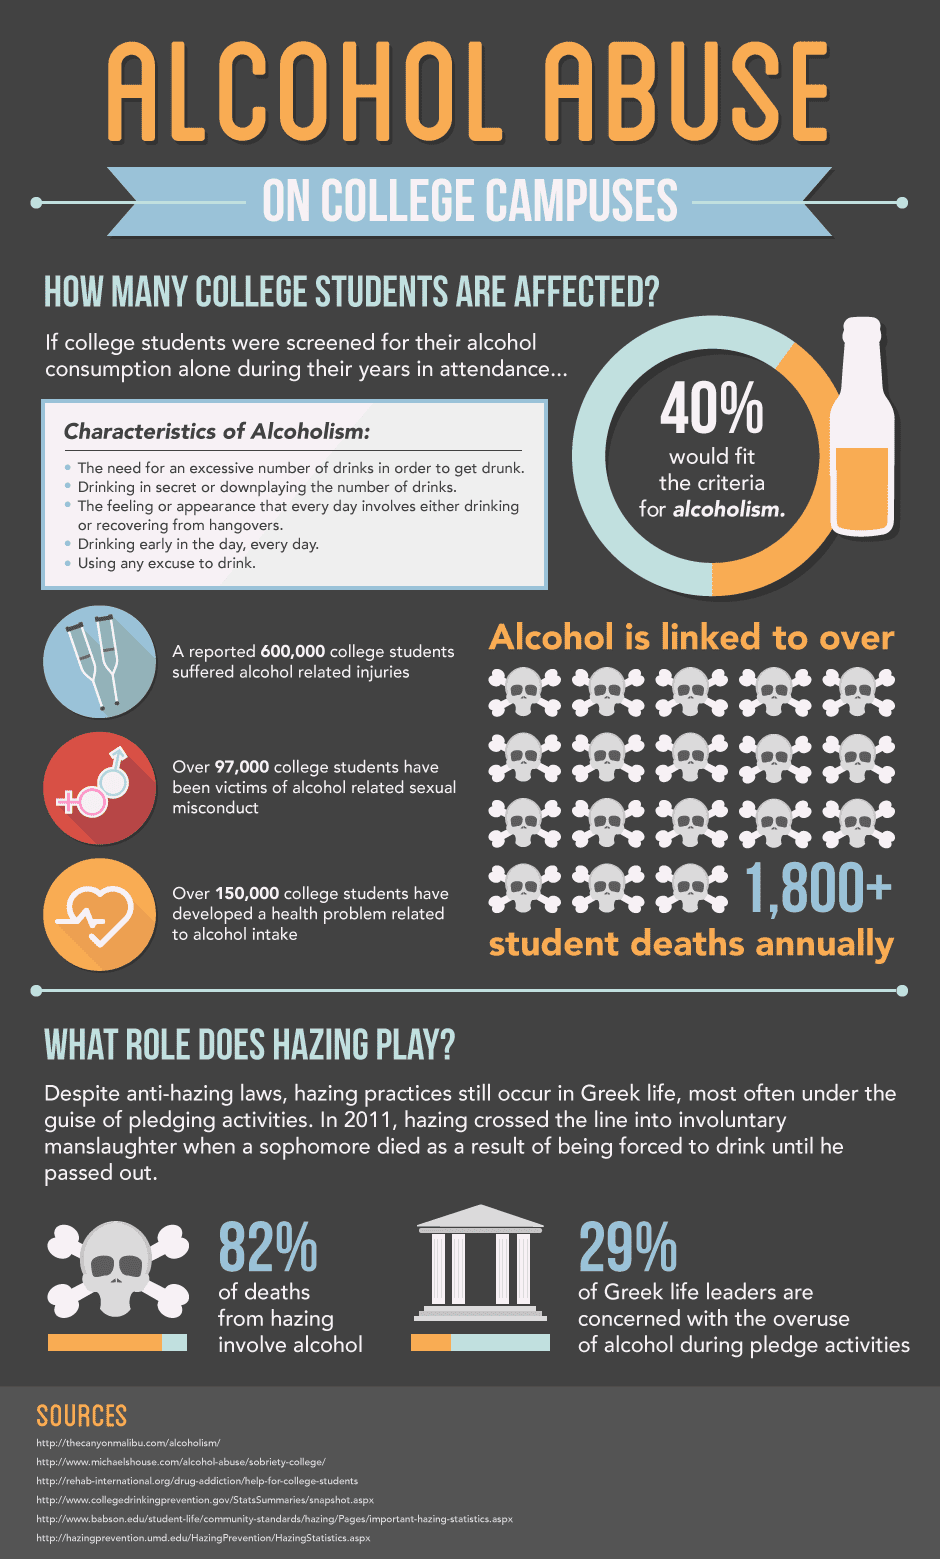 hazing plays an important role in binge drinking in college students. despite anti-hazing laws, hazing practices still occur in certain greek life activities. This most often happens during pledging semesters in college activities. in 2011, a university greek chapters hazing activities went over the line by involuntary manslaughter when a student died by being force to drink until they passed out.